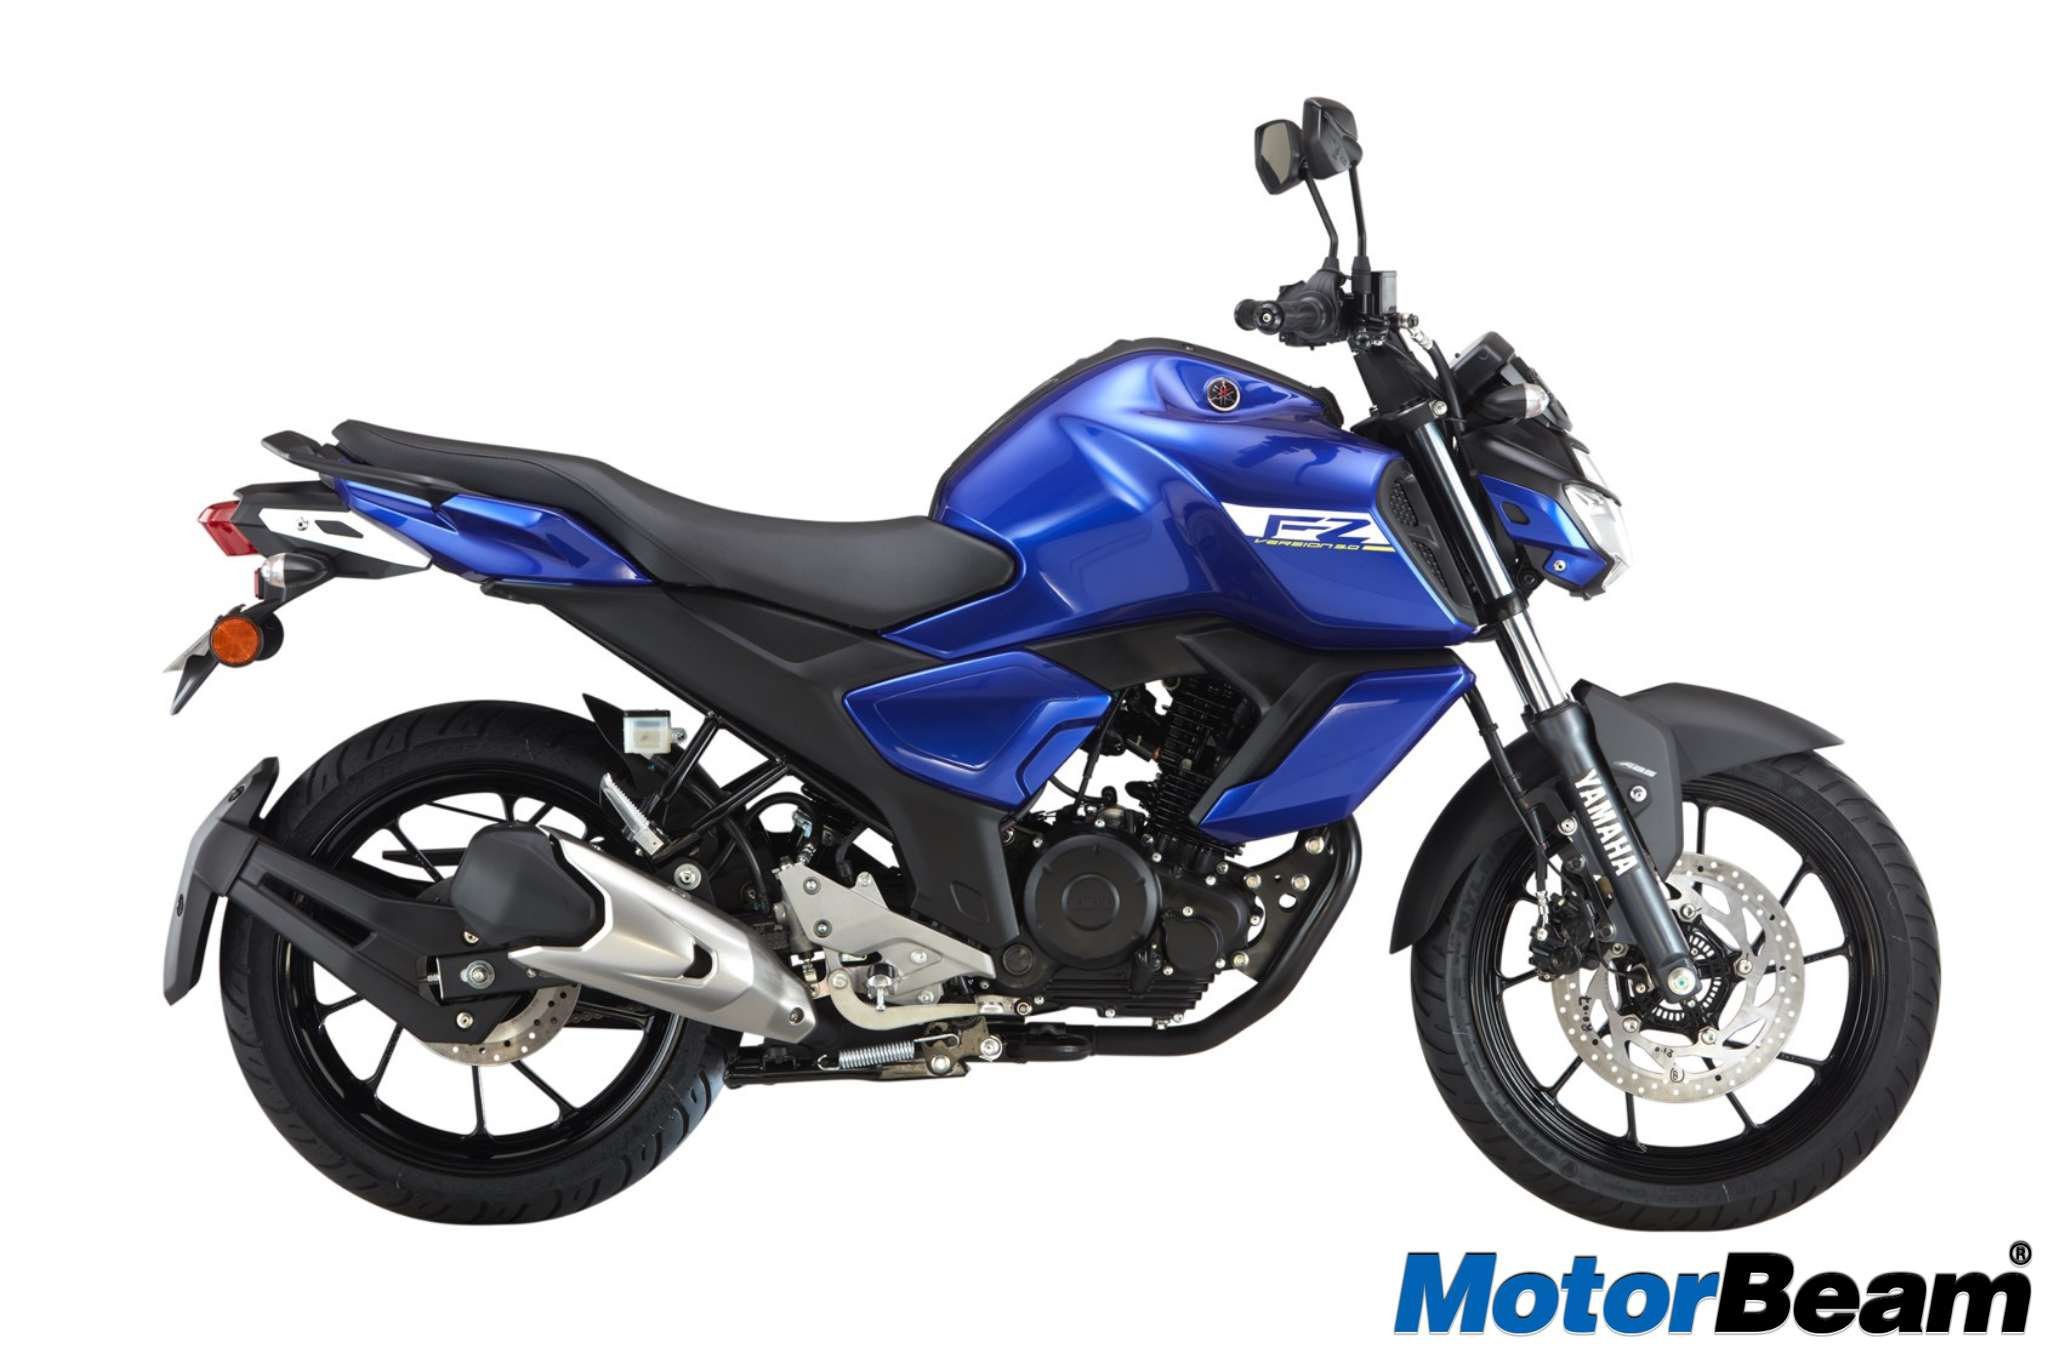 Yamaha FZ-FI V3.0 Warna racing Blue